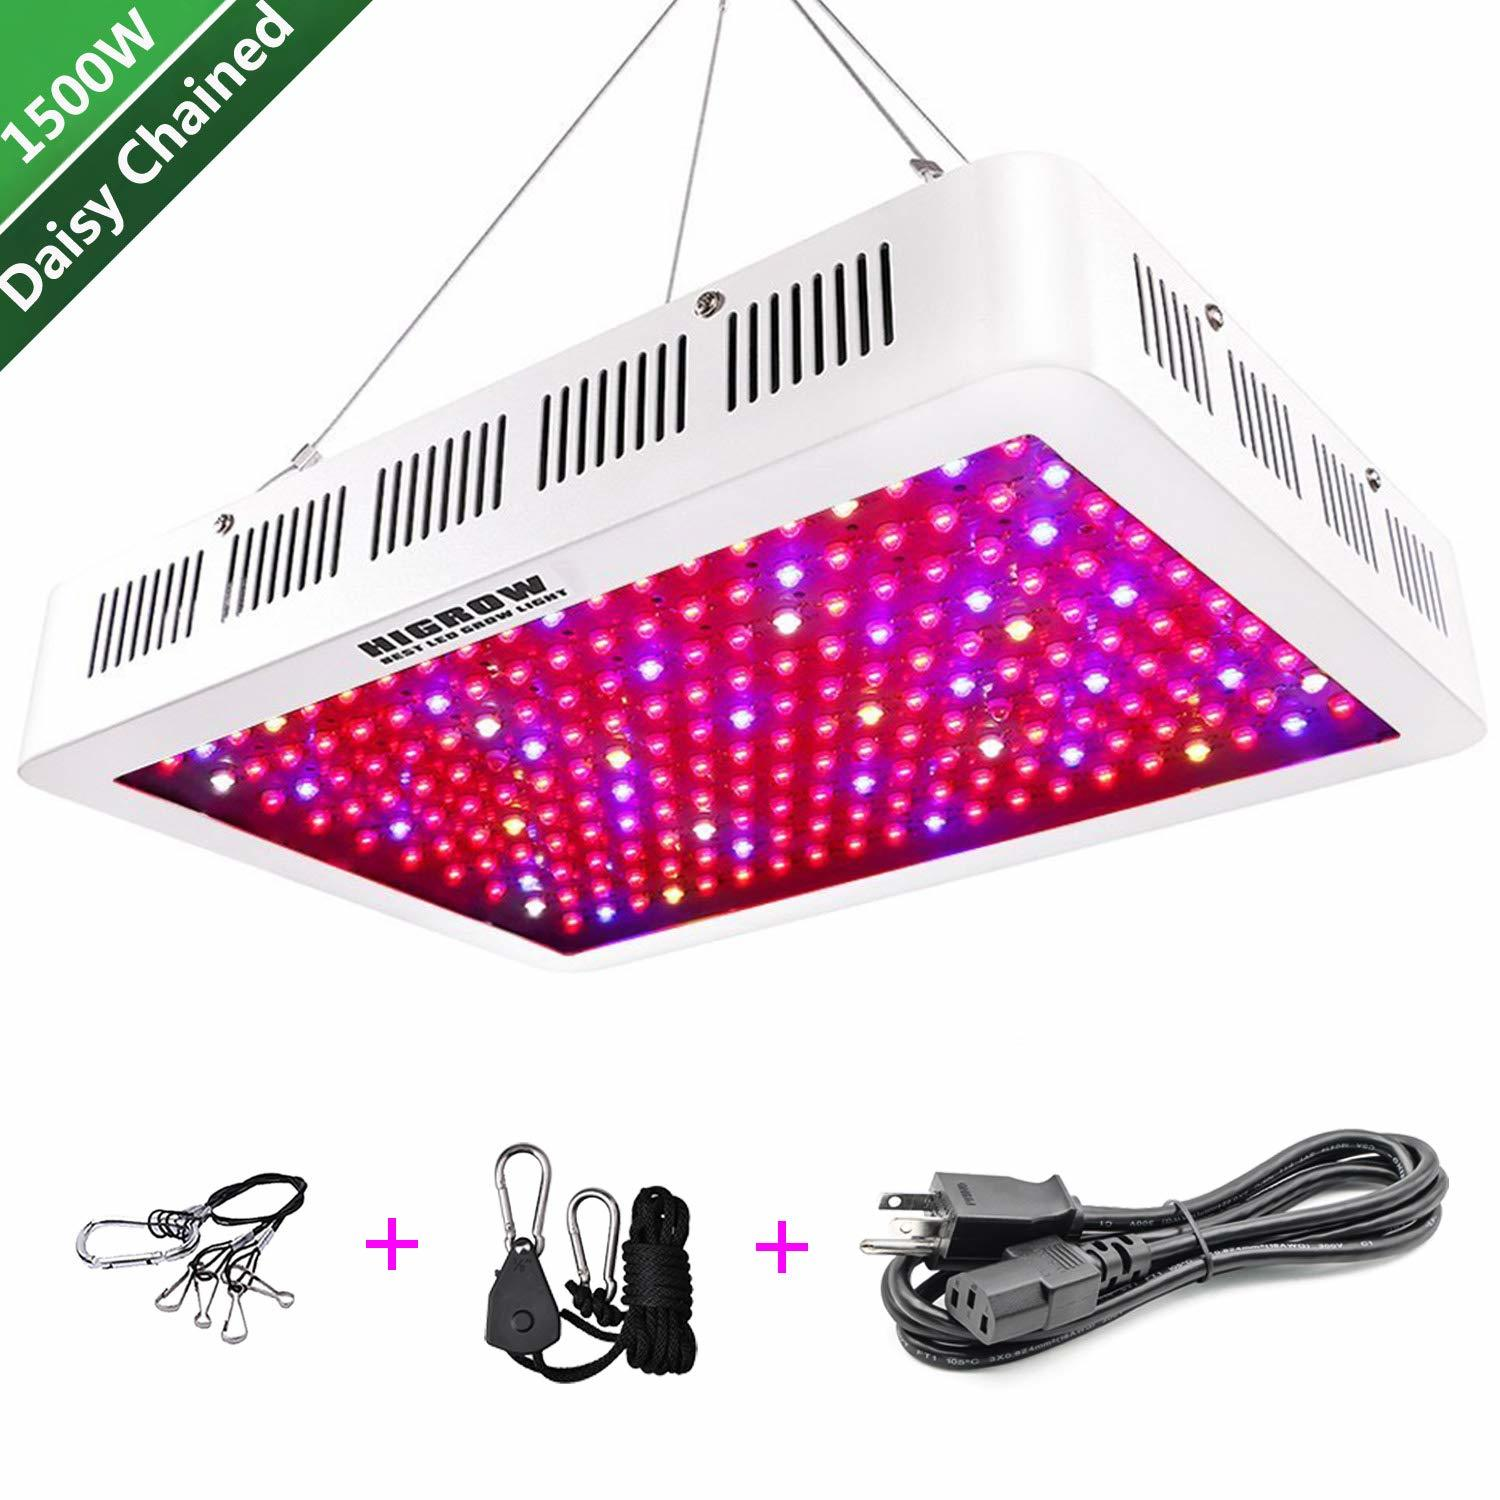 Higrow 1500W LED Grow Light For People with 200 Budget